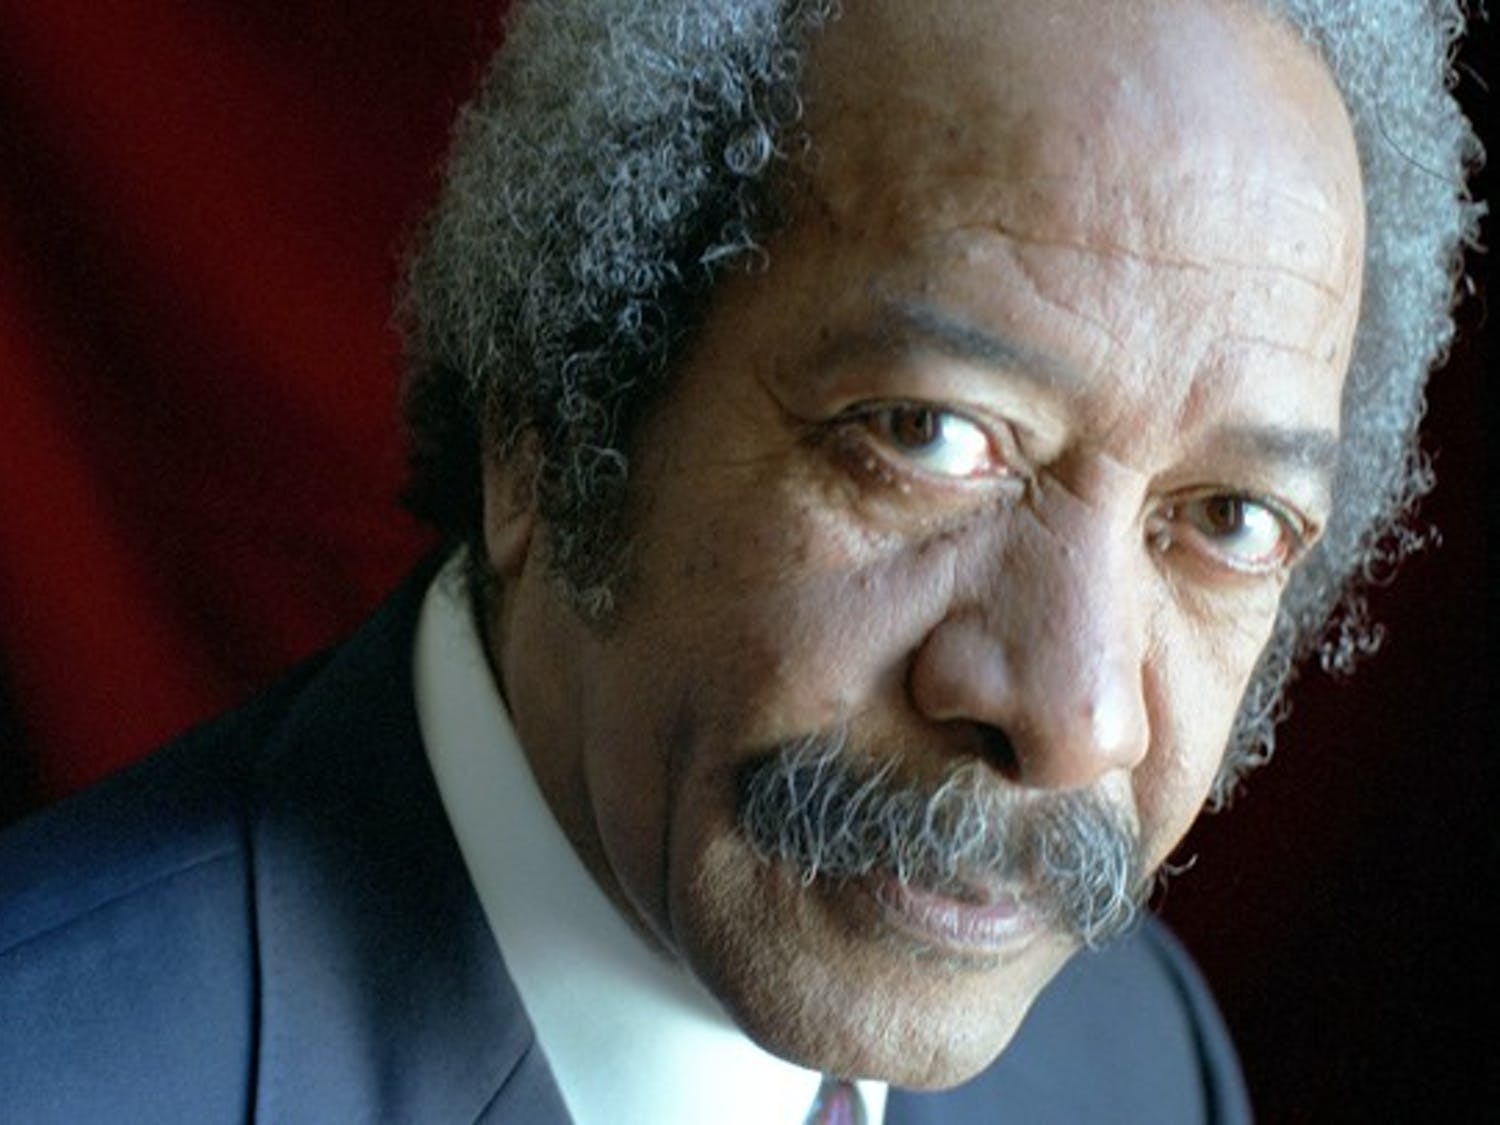 """R&B legend Allen Toussaint will perform at Memorial Hall tonight. He wrote iconic hits from the 1950's and 1960's such as """"I Like It Like That""""."""